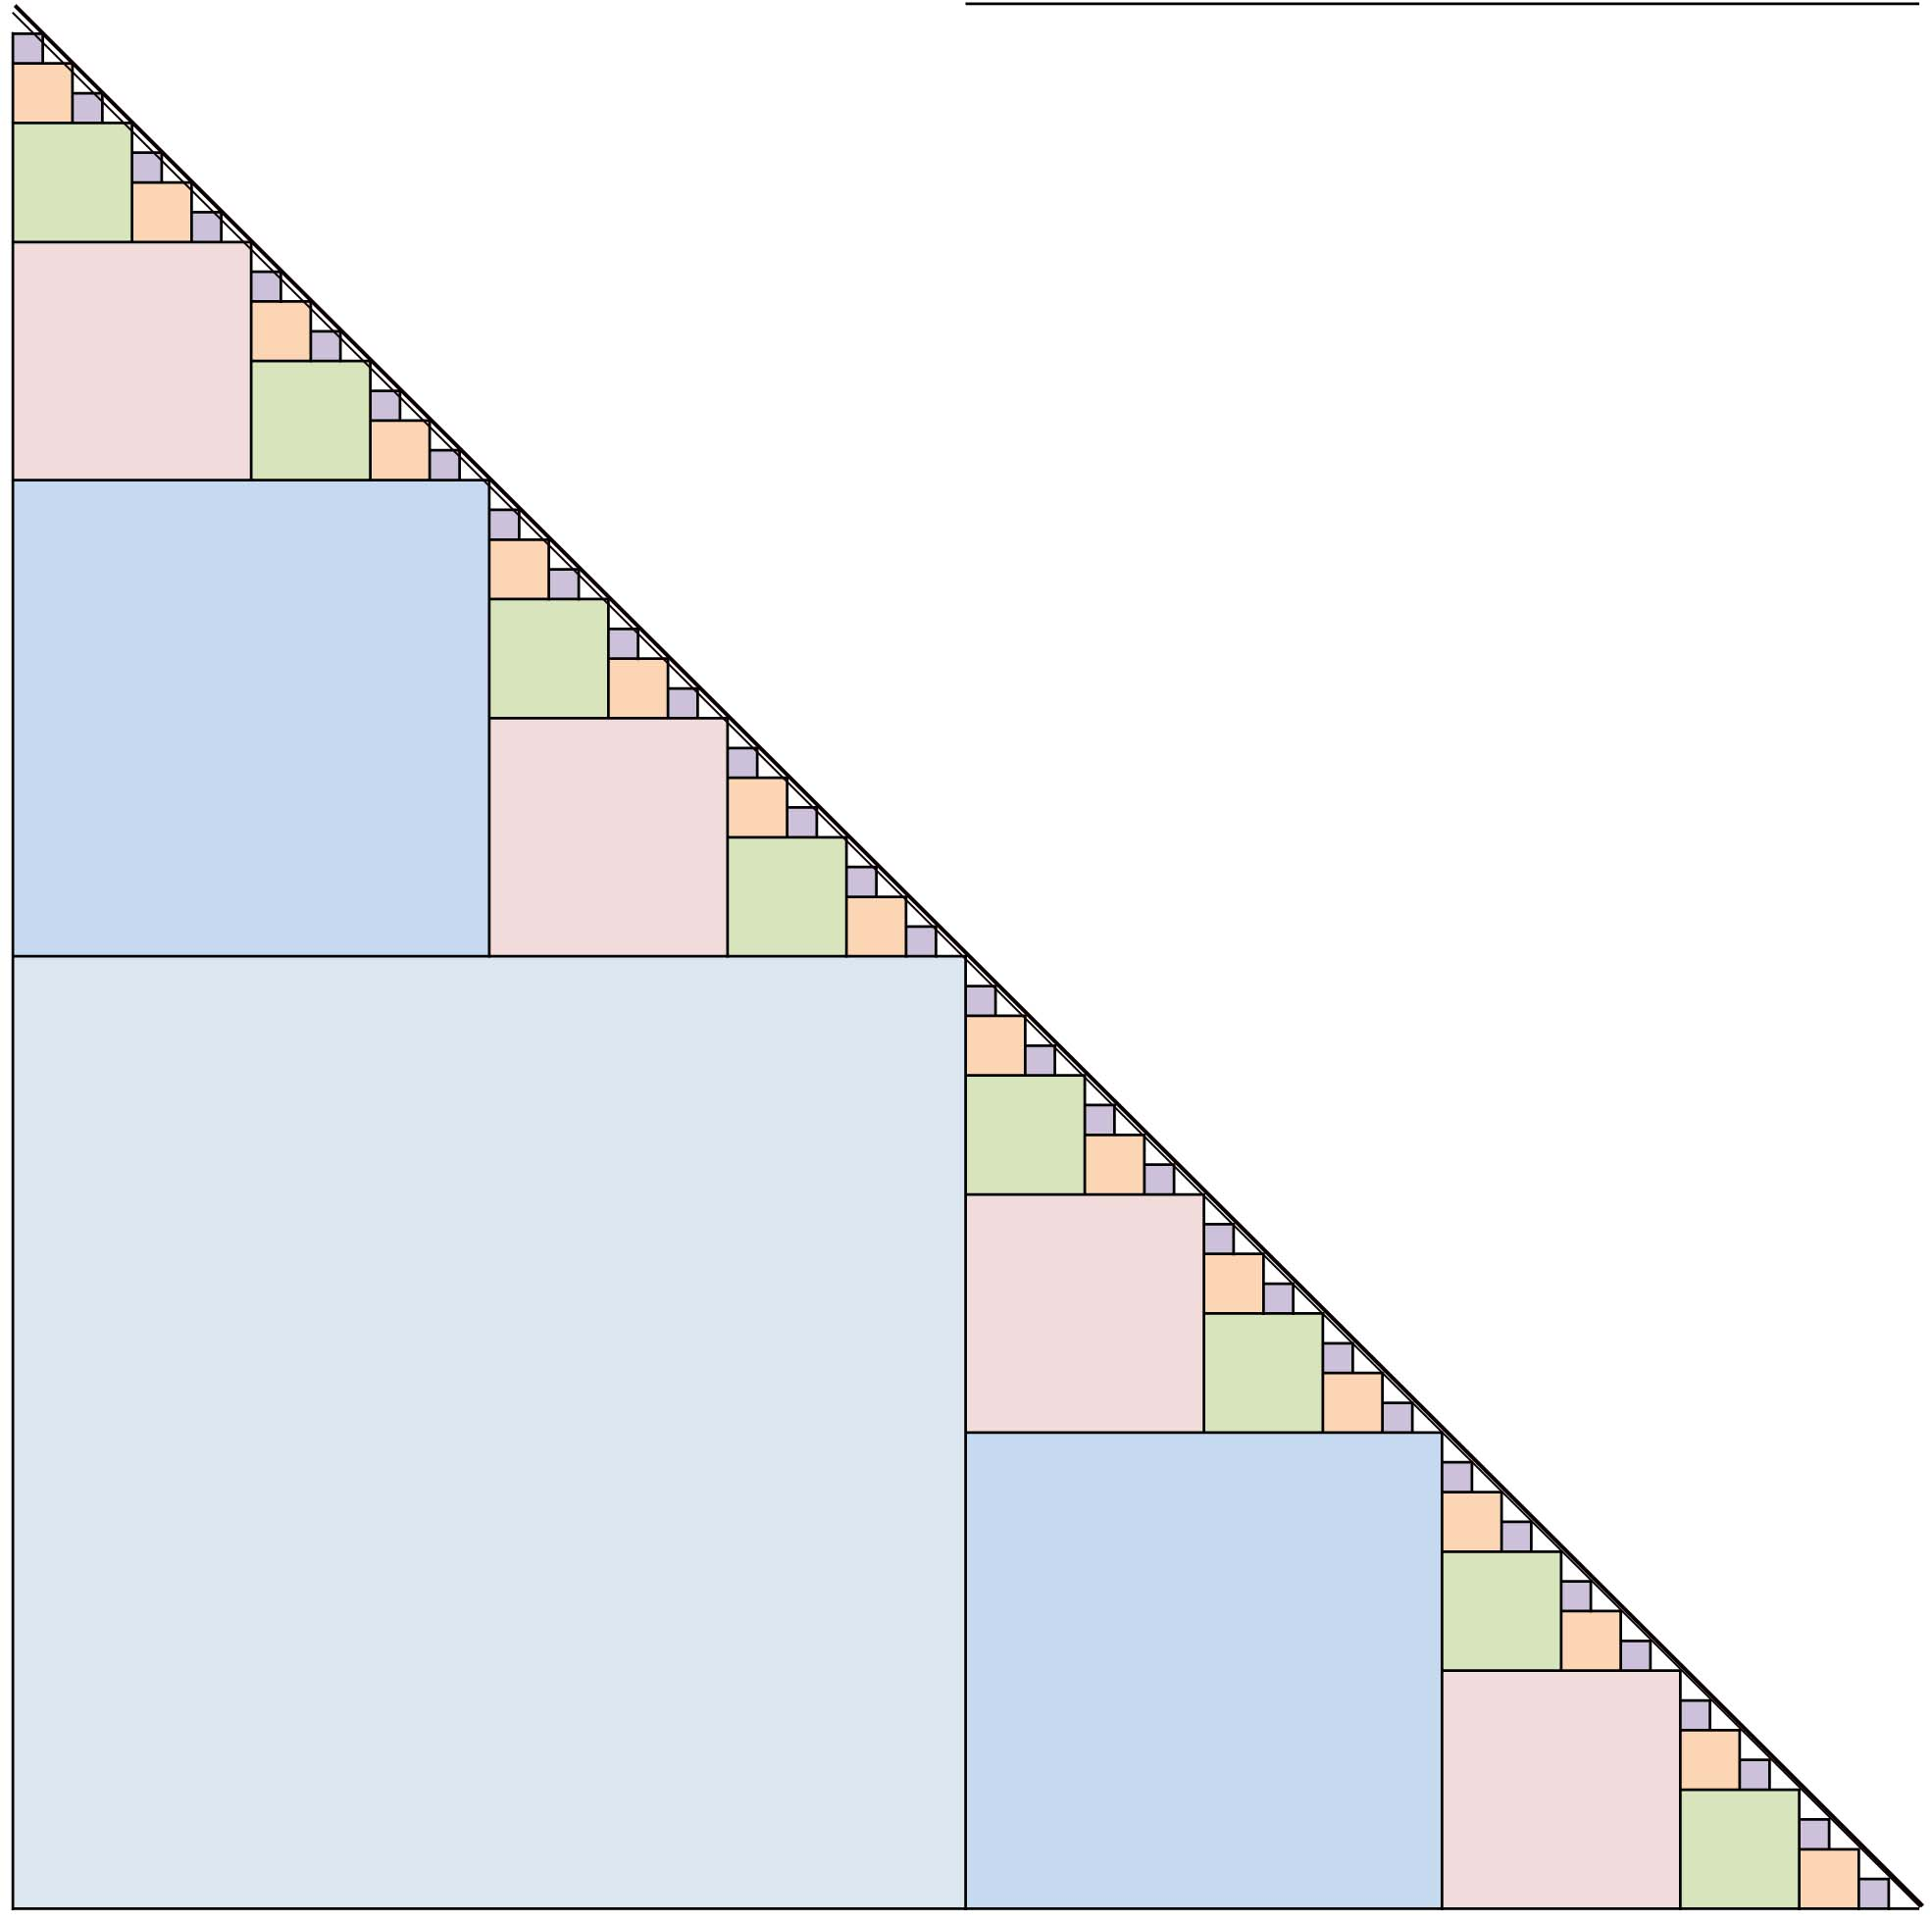 http://www.prise2tete.fr/upload/nobodydy-gateau108-triangle.jpg